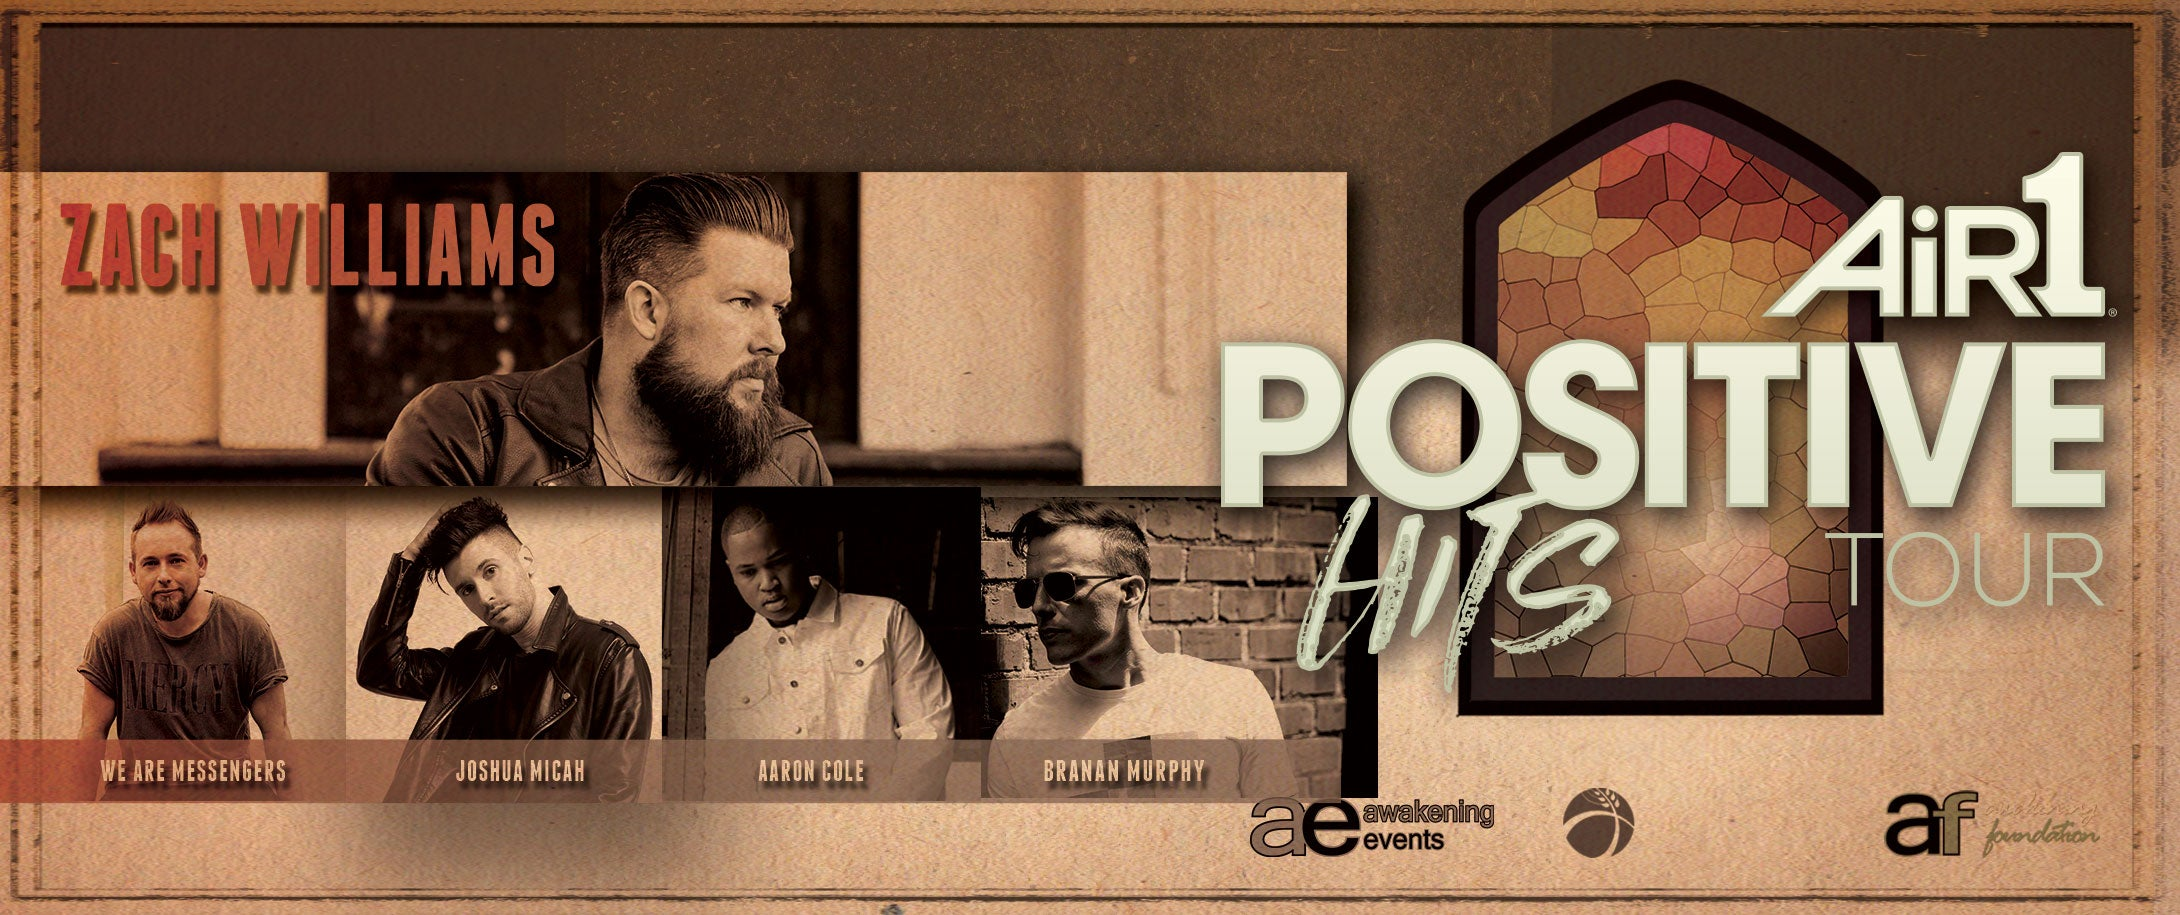 Air1 Positive Hits Tour Featuring: Zach Williams